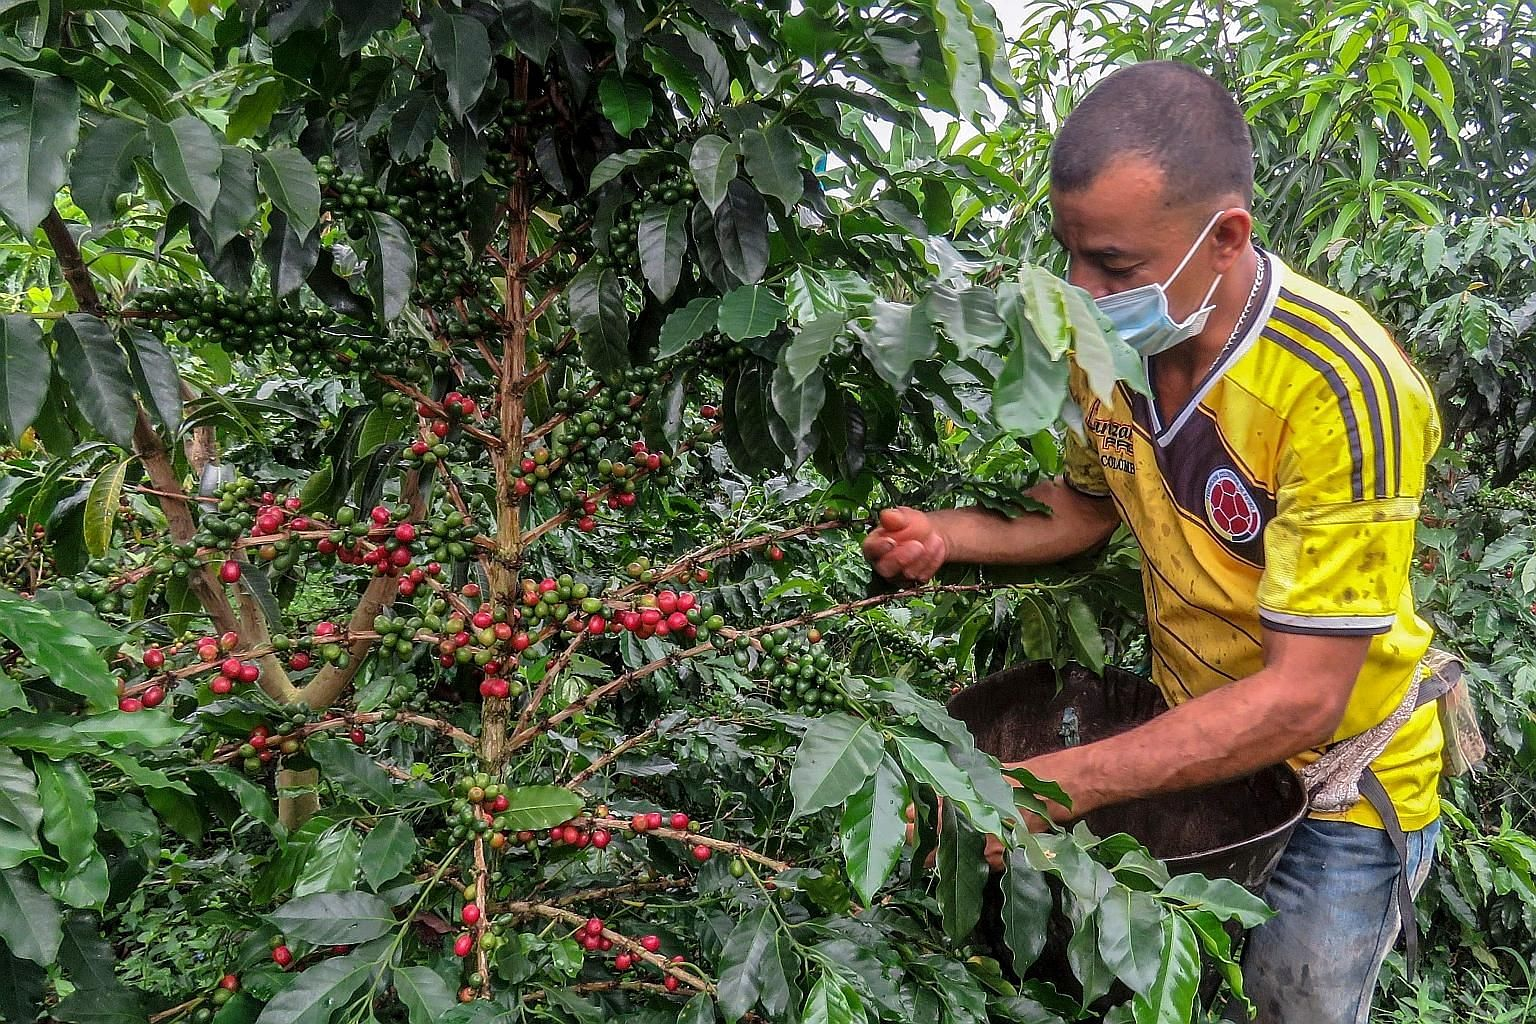 A farmer collecting coffee seeds at a plantation in Colombia last month. A skilled labour squeeze is the latest pandemic-era blow for coffee growers in the country, as travel restrictions keep out experienced seasonal pickers and force growers to use